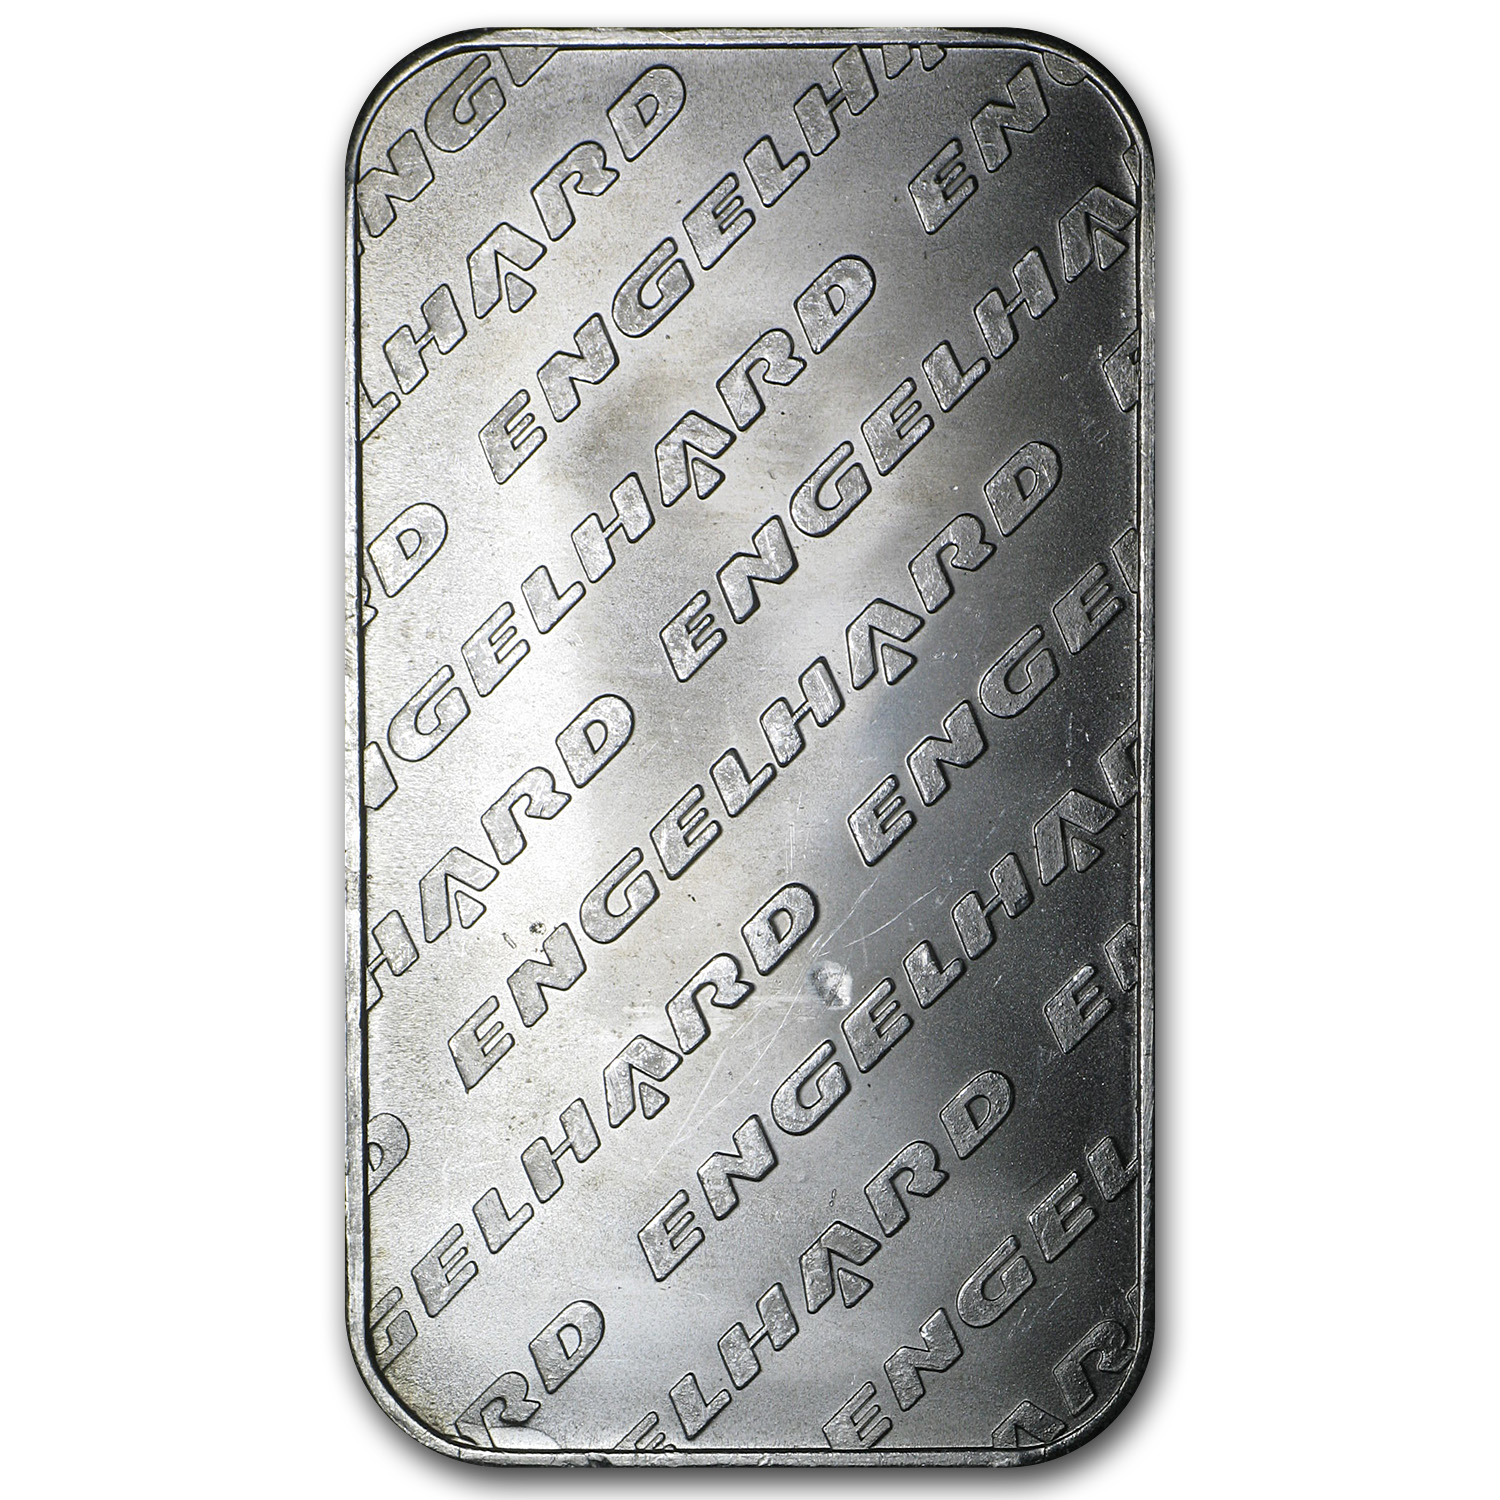 1 oz Silver Bar - Engelhard (Tall-Eagle Design)